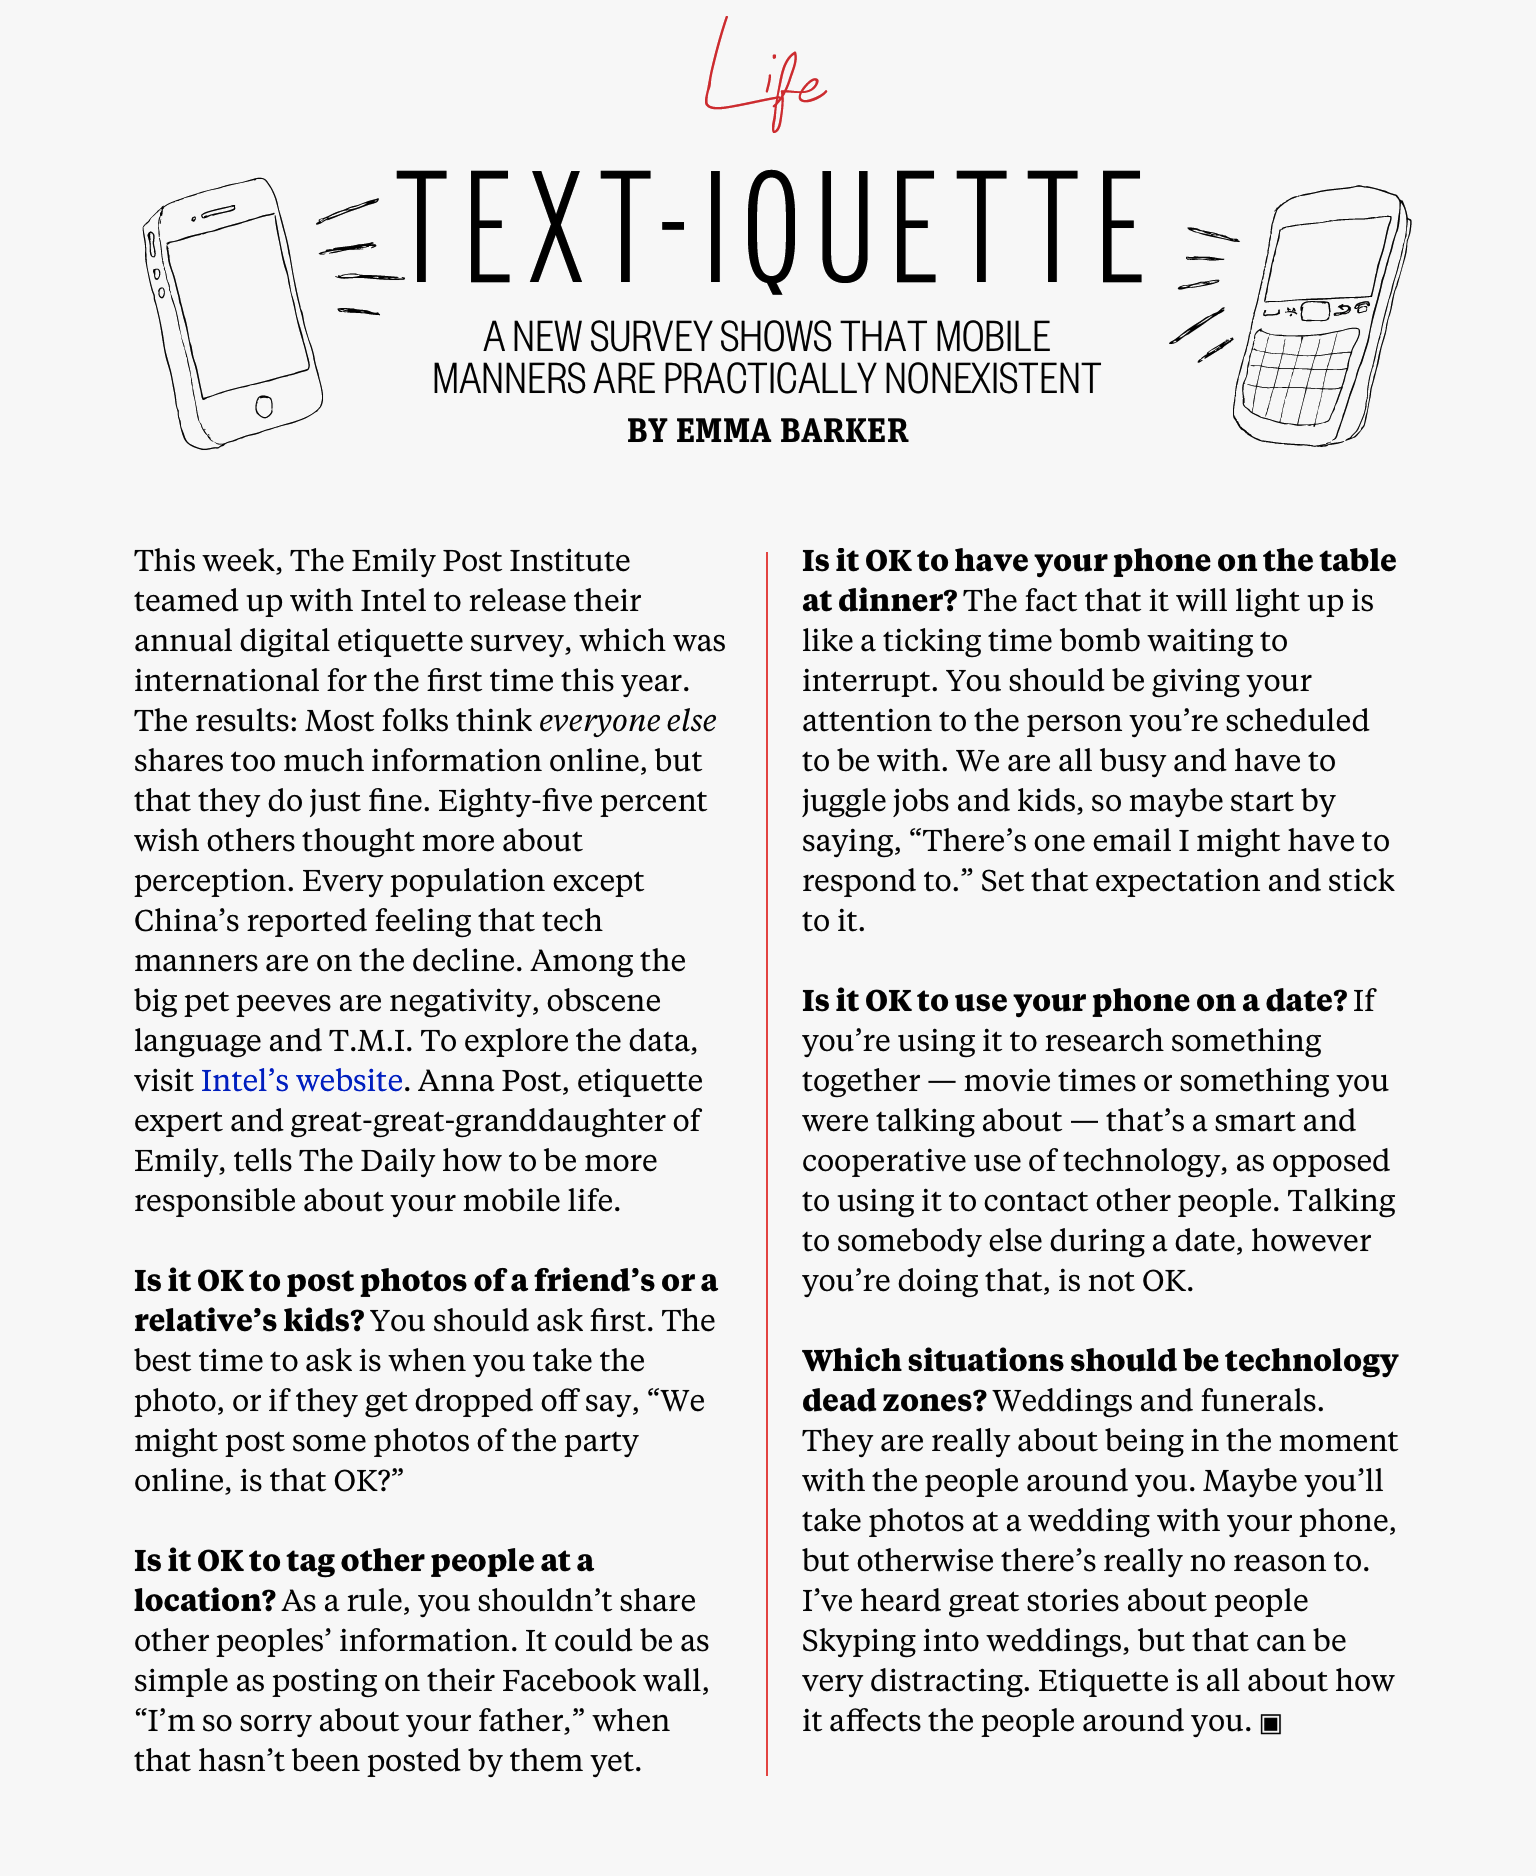 Etiquette: New Rules Of Etiquette Just For Your Smartphone, From